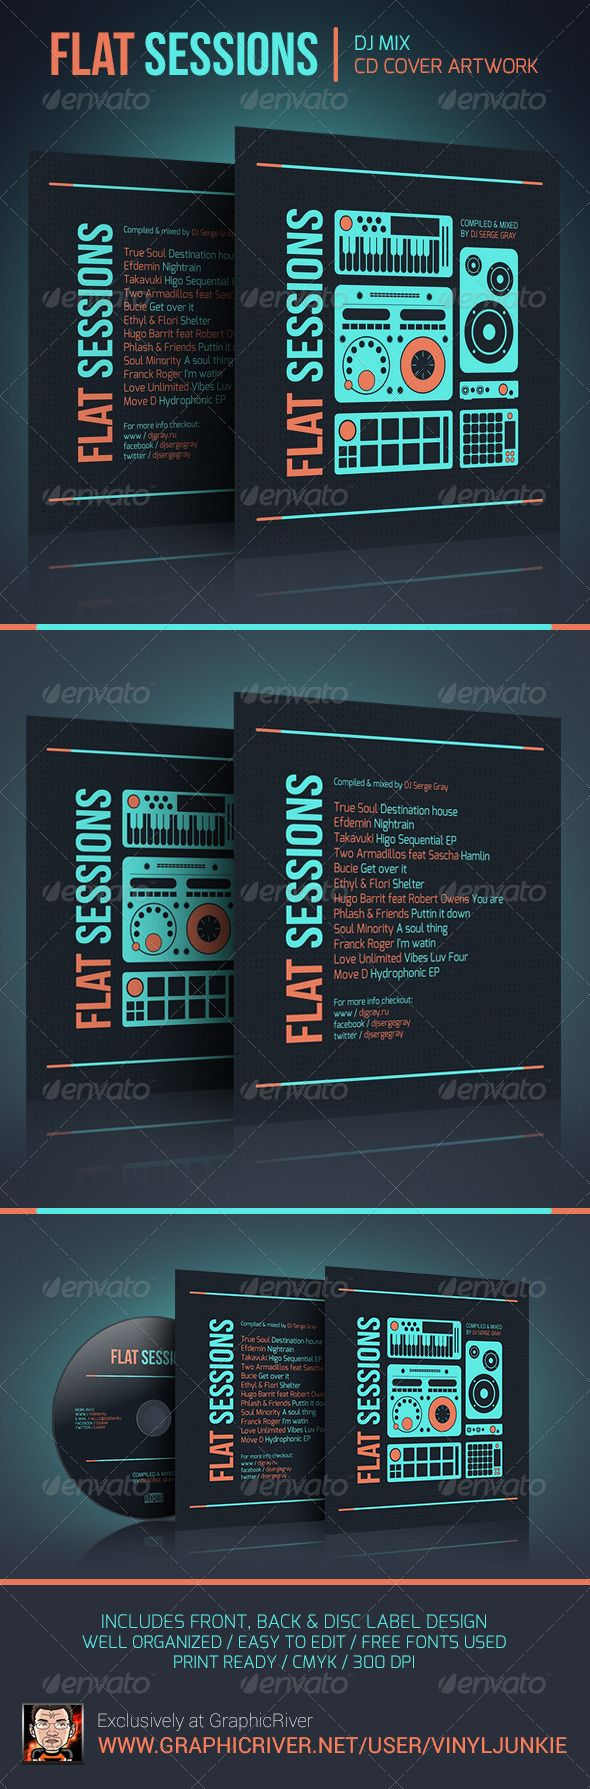 Flat Sessions  DJ Mix CD Cover Artwork — Photoshop PSD #dj #party • Available here → https://graphicriver.net/item/flat-sessions-dj-mix-cd-cover-artwork/6021444?ref=pxcr